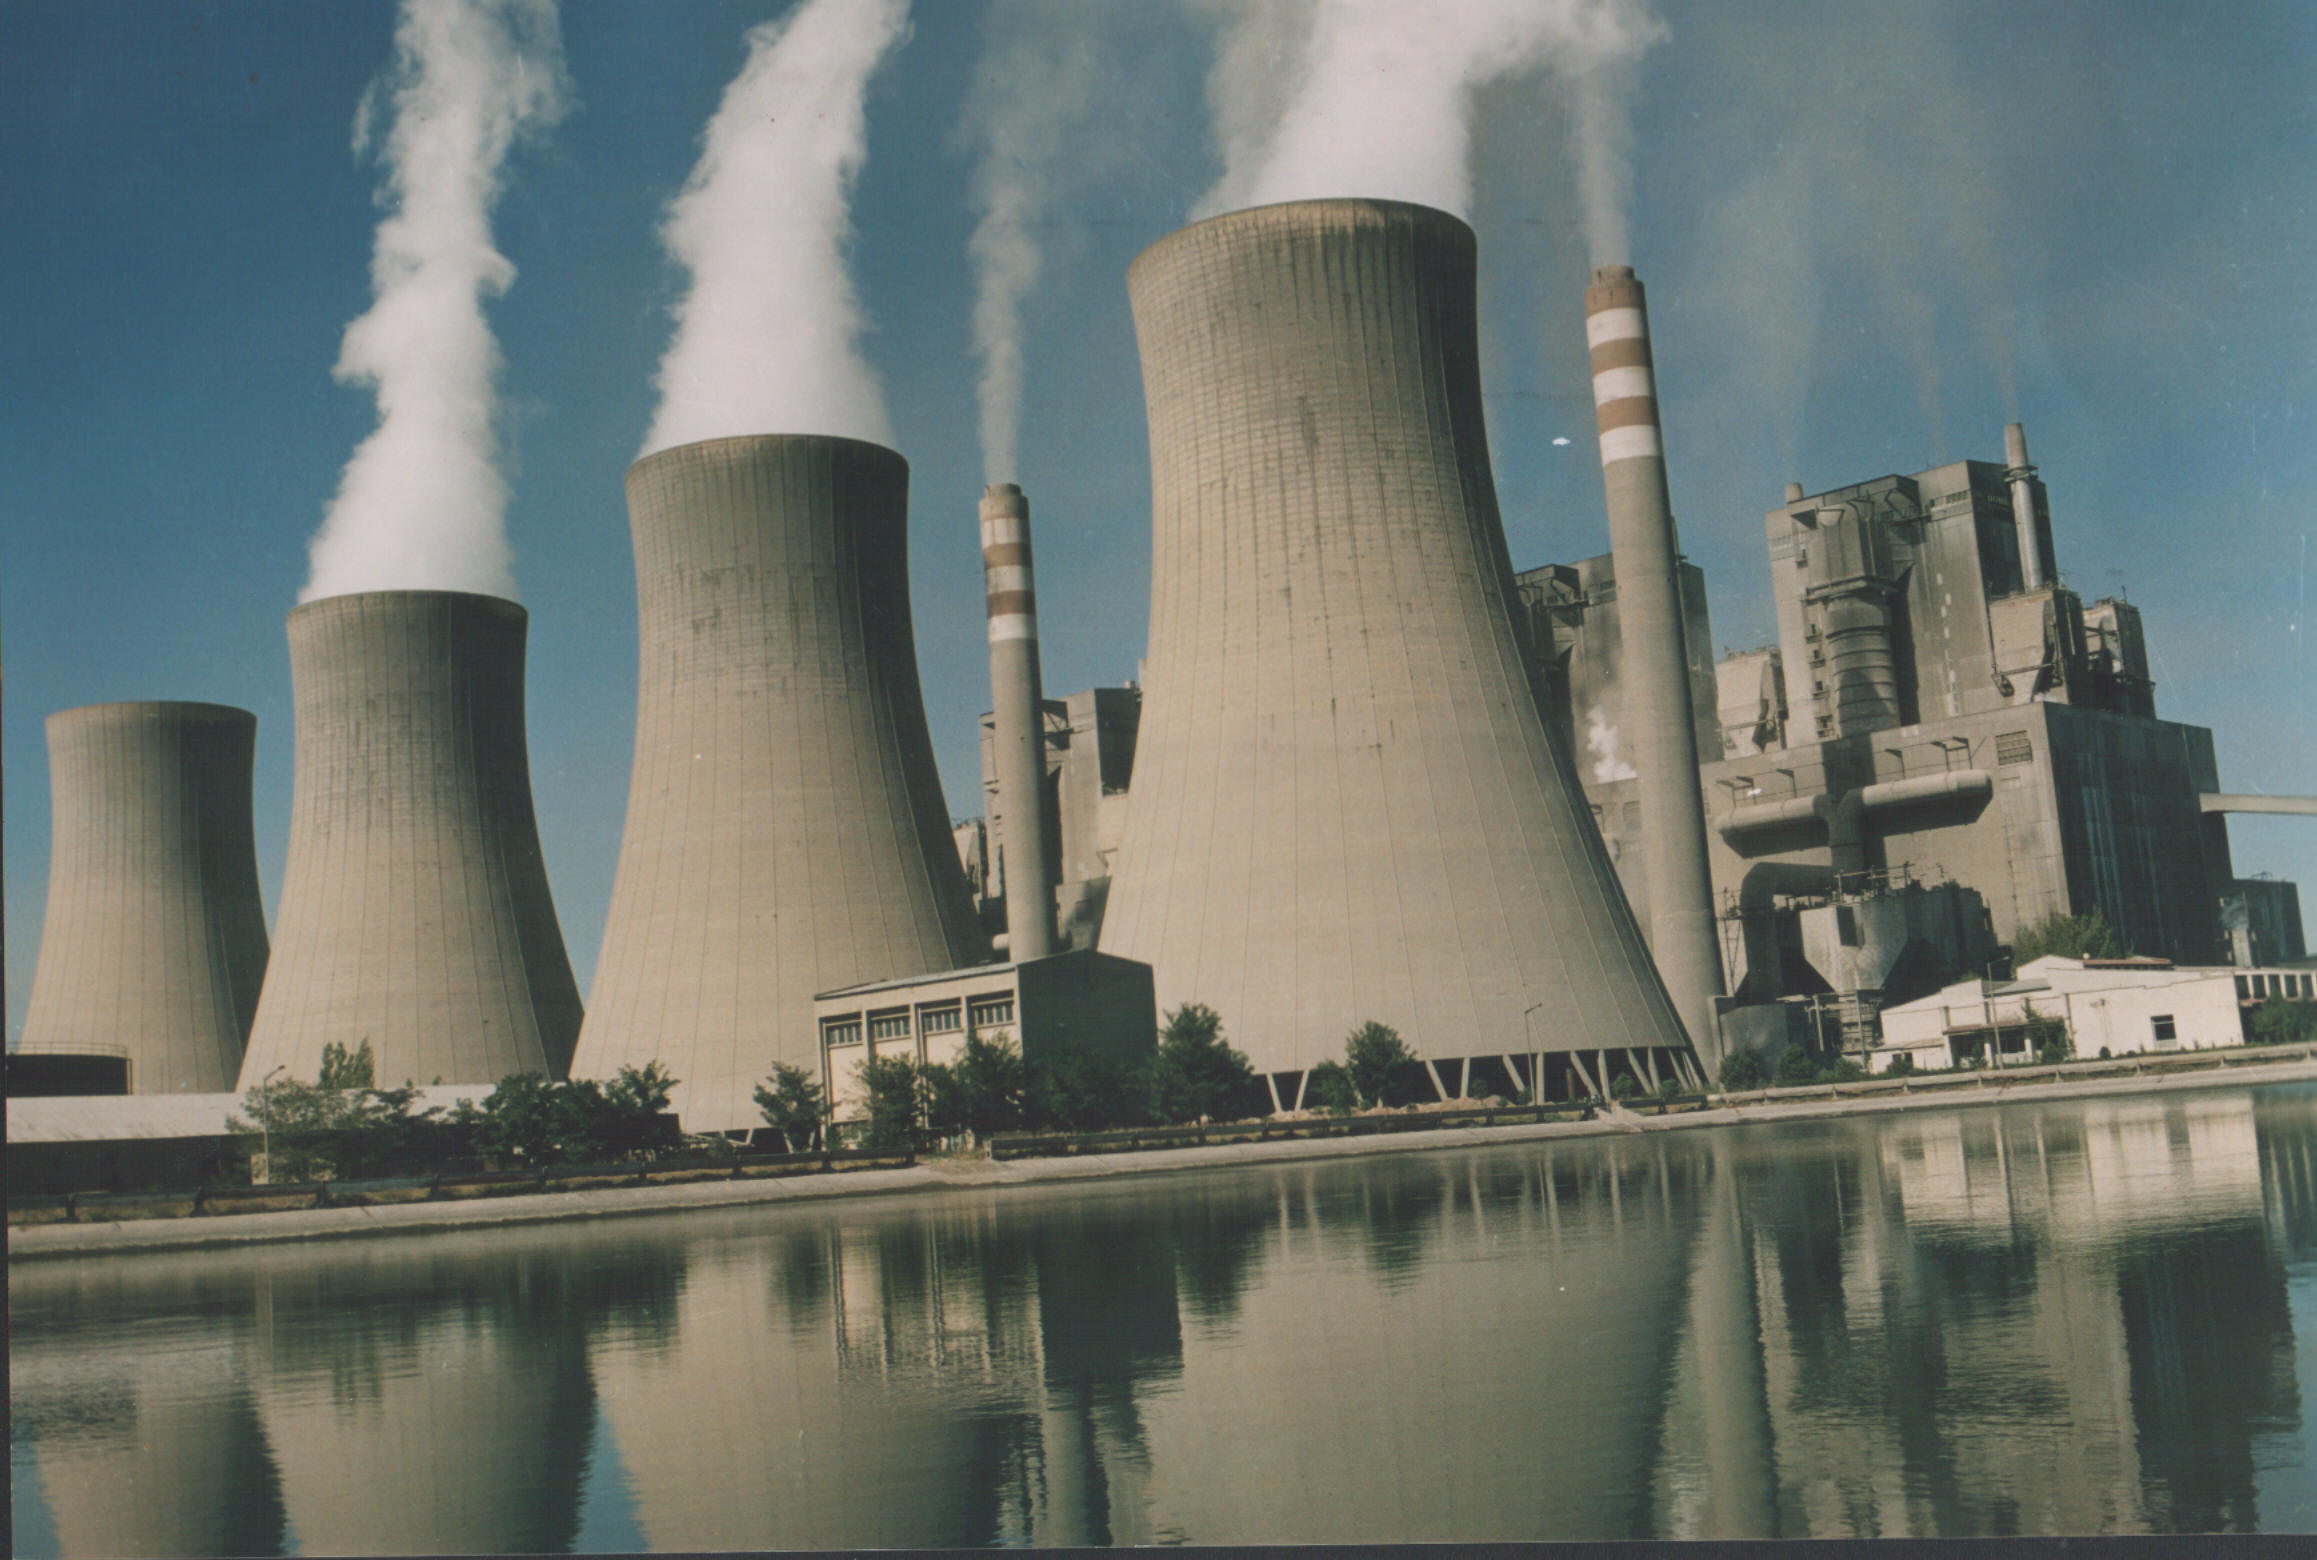 TURKEY'S SEALED THERMAL POWER PLANTS